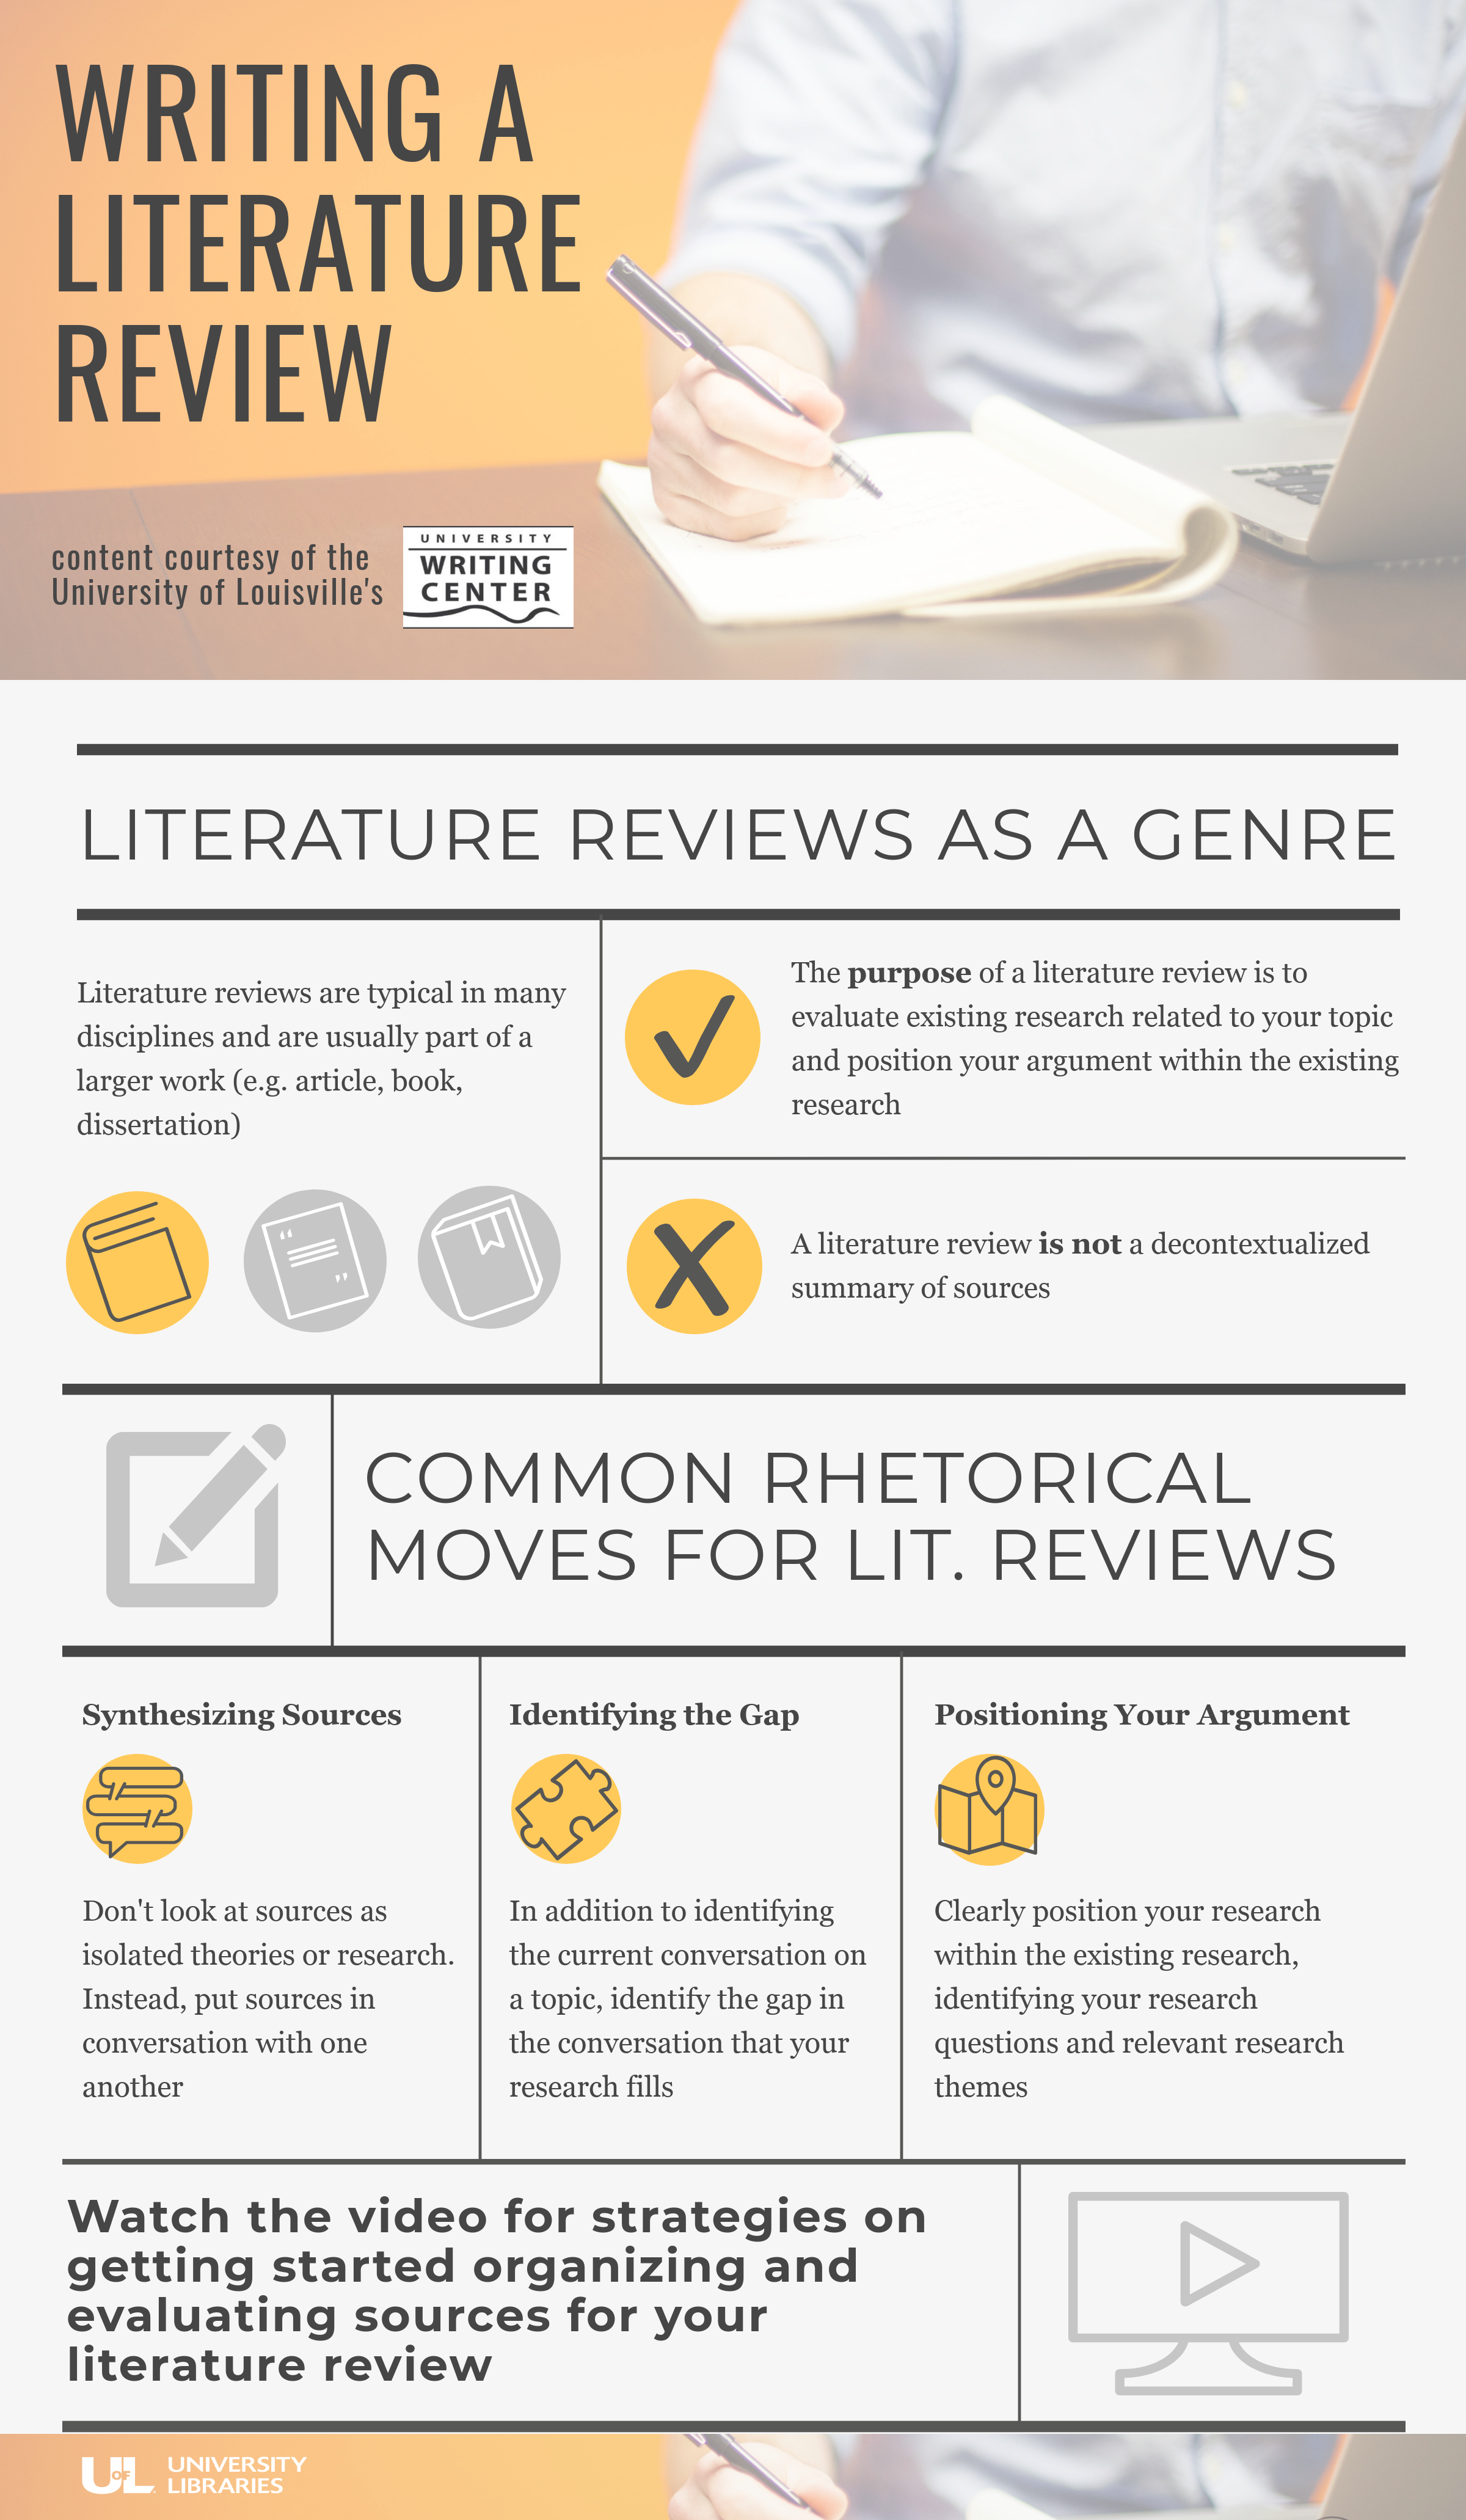 Writing a Literature Review. Content courtesy of the University of Louisville's University Writing Center. Literature Reviews as a Genre: Literature reviews are typical in many disciplines and are usually part of a larger work (e.g. article, book, dissertation). The purpose of a literature review is to evaluate existing research related to your topic and position your argument within the existing research. A literature review is not a decontextualized summary of sources.Common rhetorical moves for lit. reviews. Synthesizing sources: Don't look at sources as isolated theories or research. Instead, put sources in conversation with one another. Identifying the gap: In addition to identifying the current conversation on a topic, identify the gap in the conversation that your research fills. Positioning your argument: Clearly position your research within the existing research, identifying your research questions and relevant research themes.Watch the video for strategies on getting started organizing and evaluating sources for your literature review.